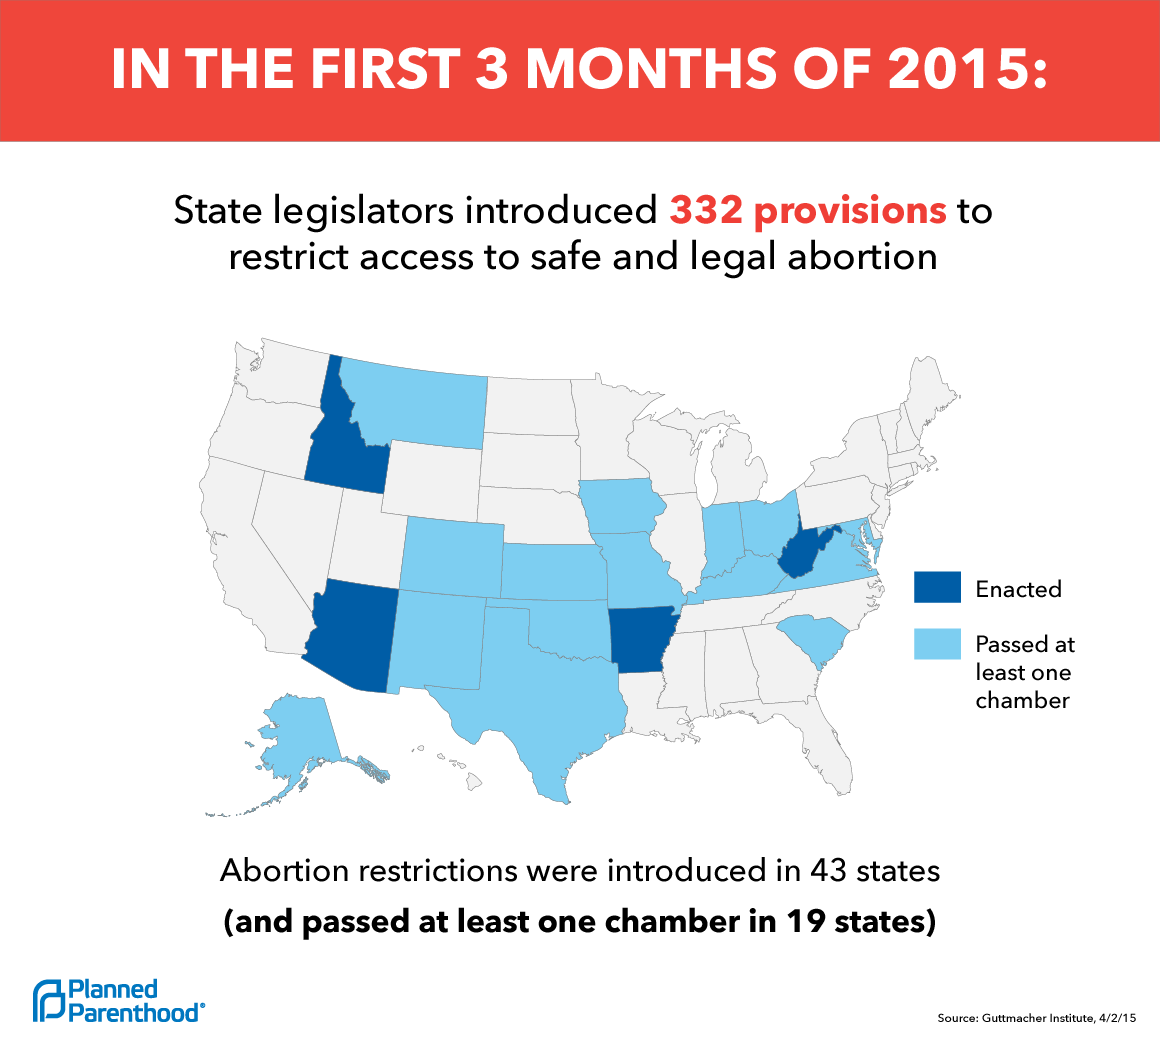 the states should stop restricting access to abortion clinics Abortion has been a major political issue in the united states for decades while several supreme court decisions have ensured that abortion is a legal right, pro-life activists and legislators have continued passing laws restricting abortion rights and working to end access to legal abortion in the usa.